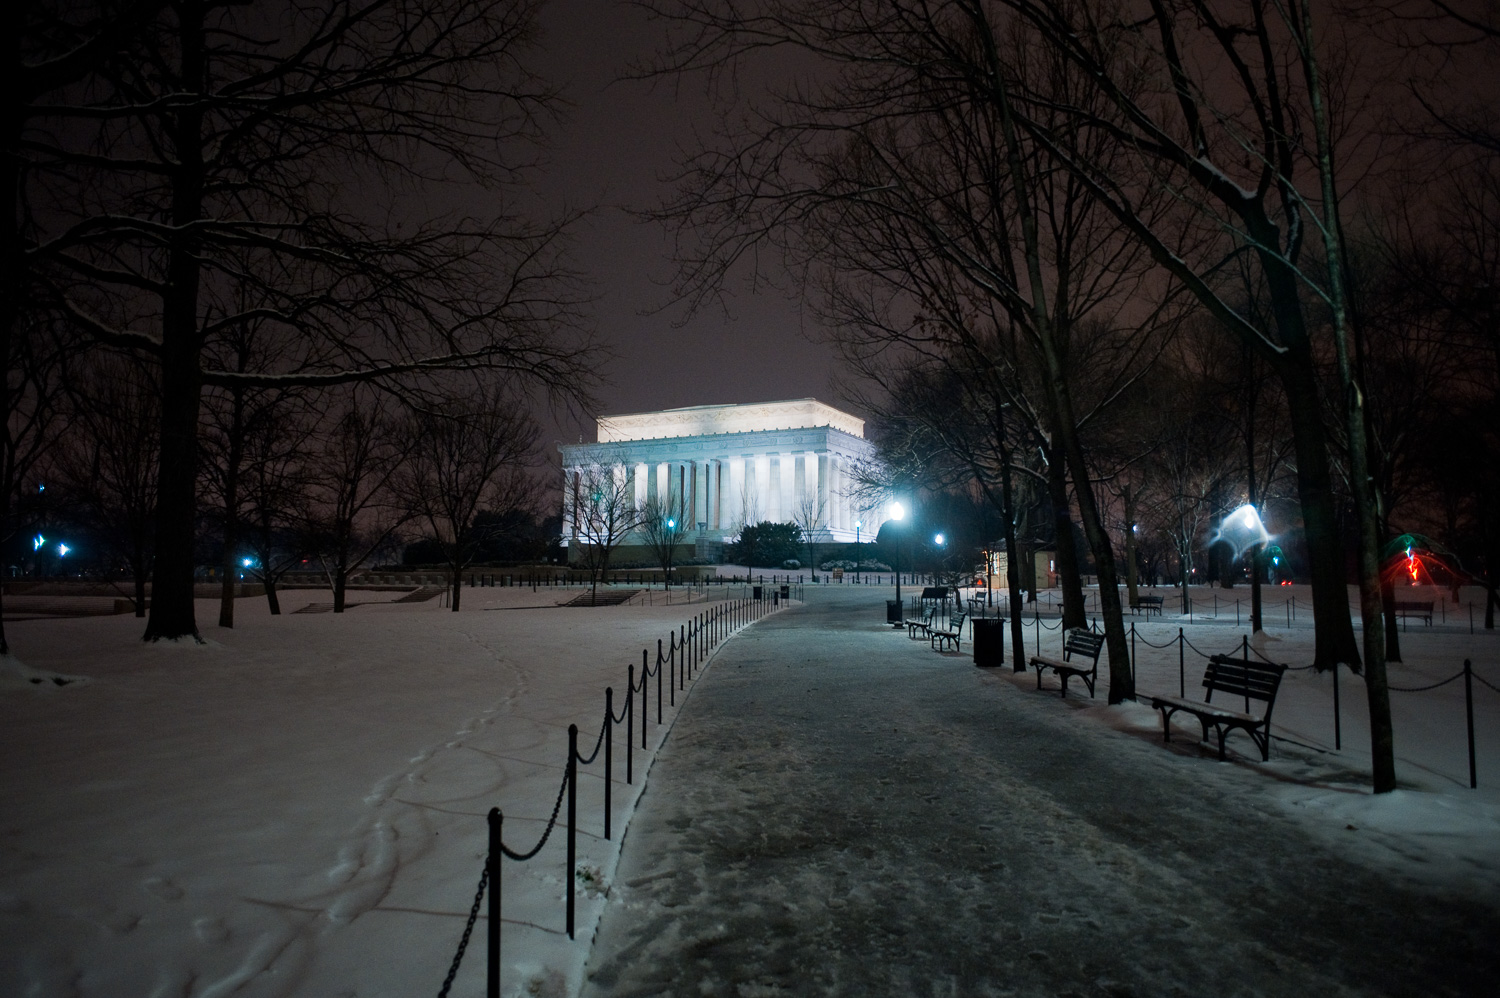 """Lincoln Memorial"", Washington, DC, 2009"